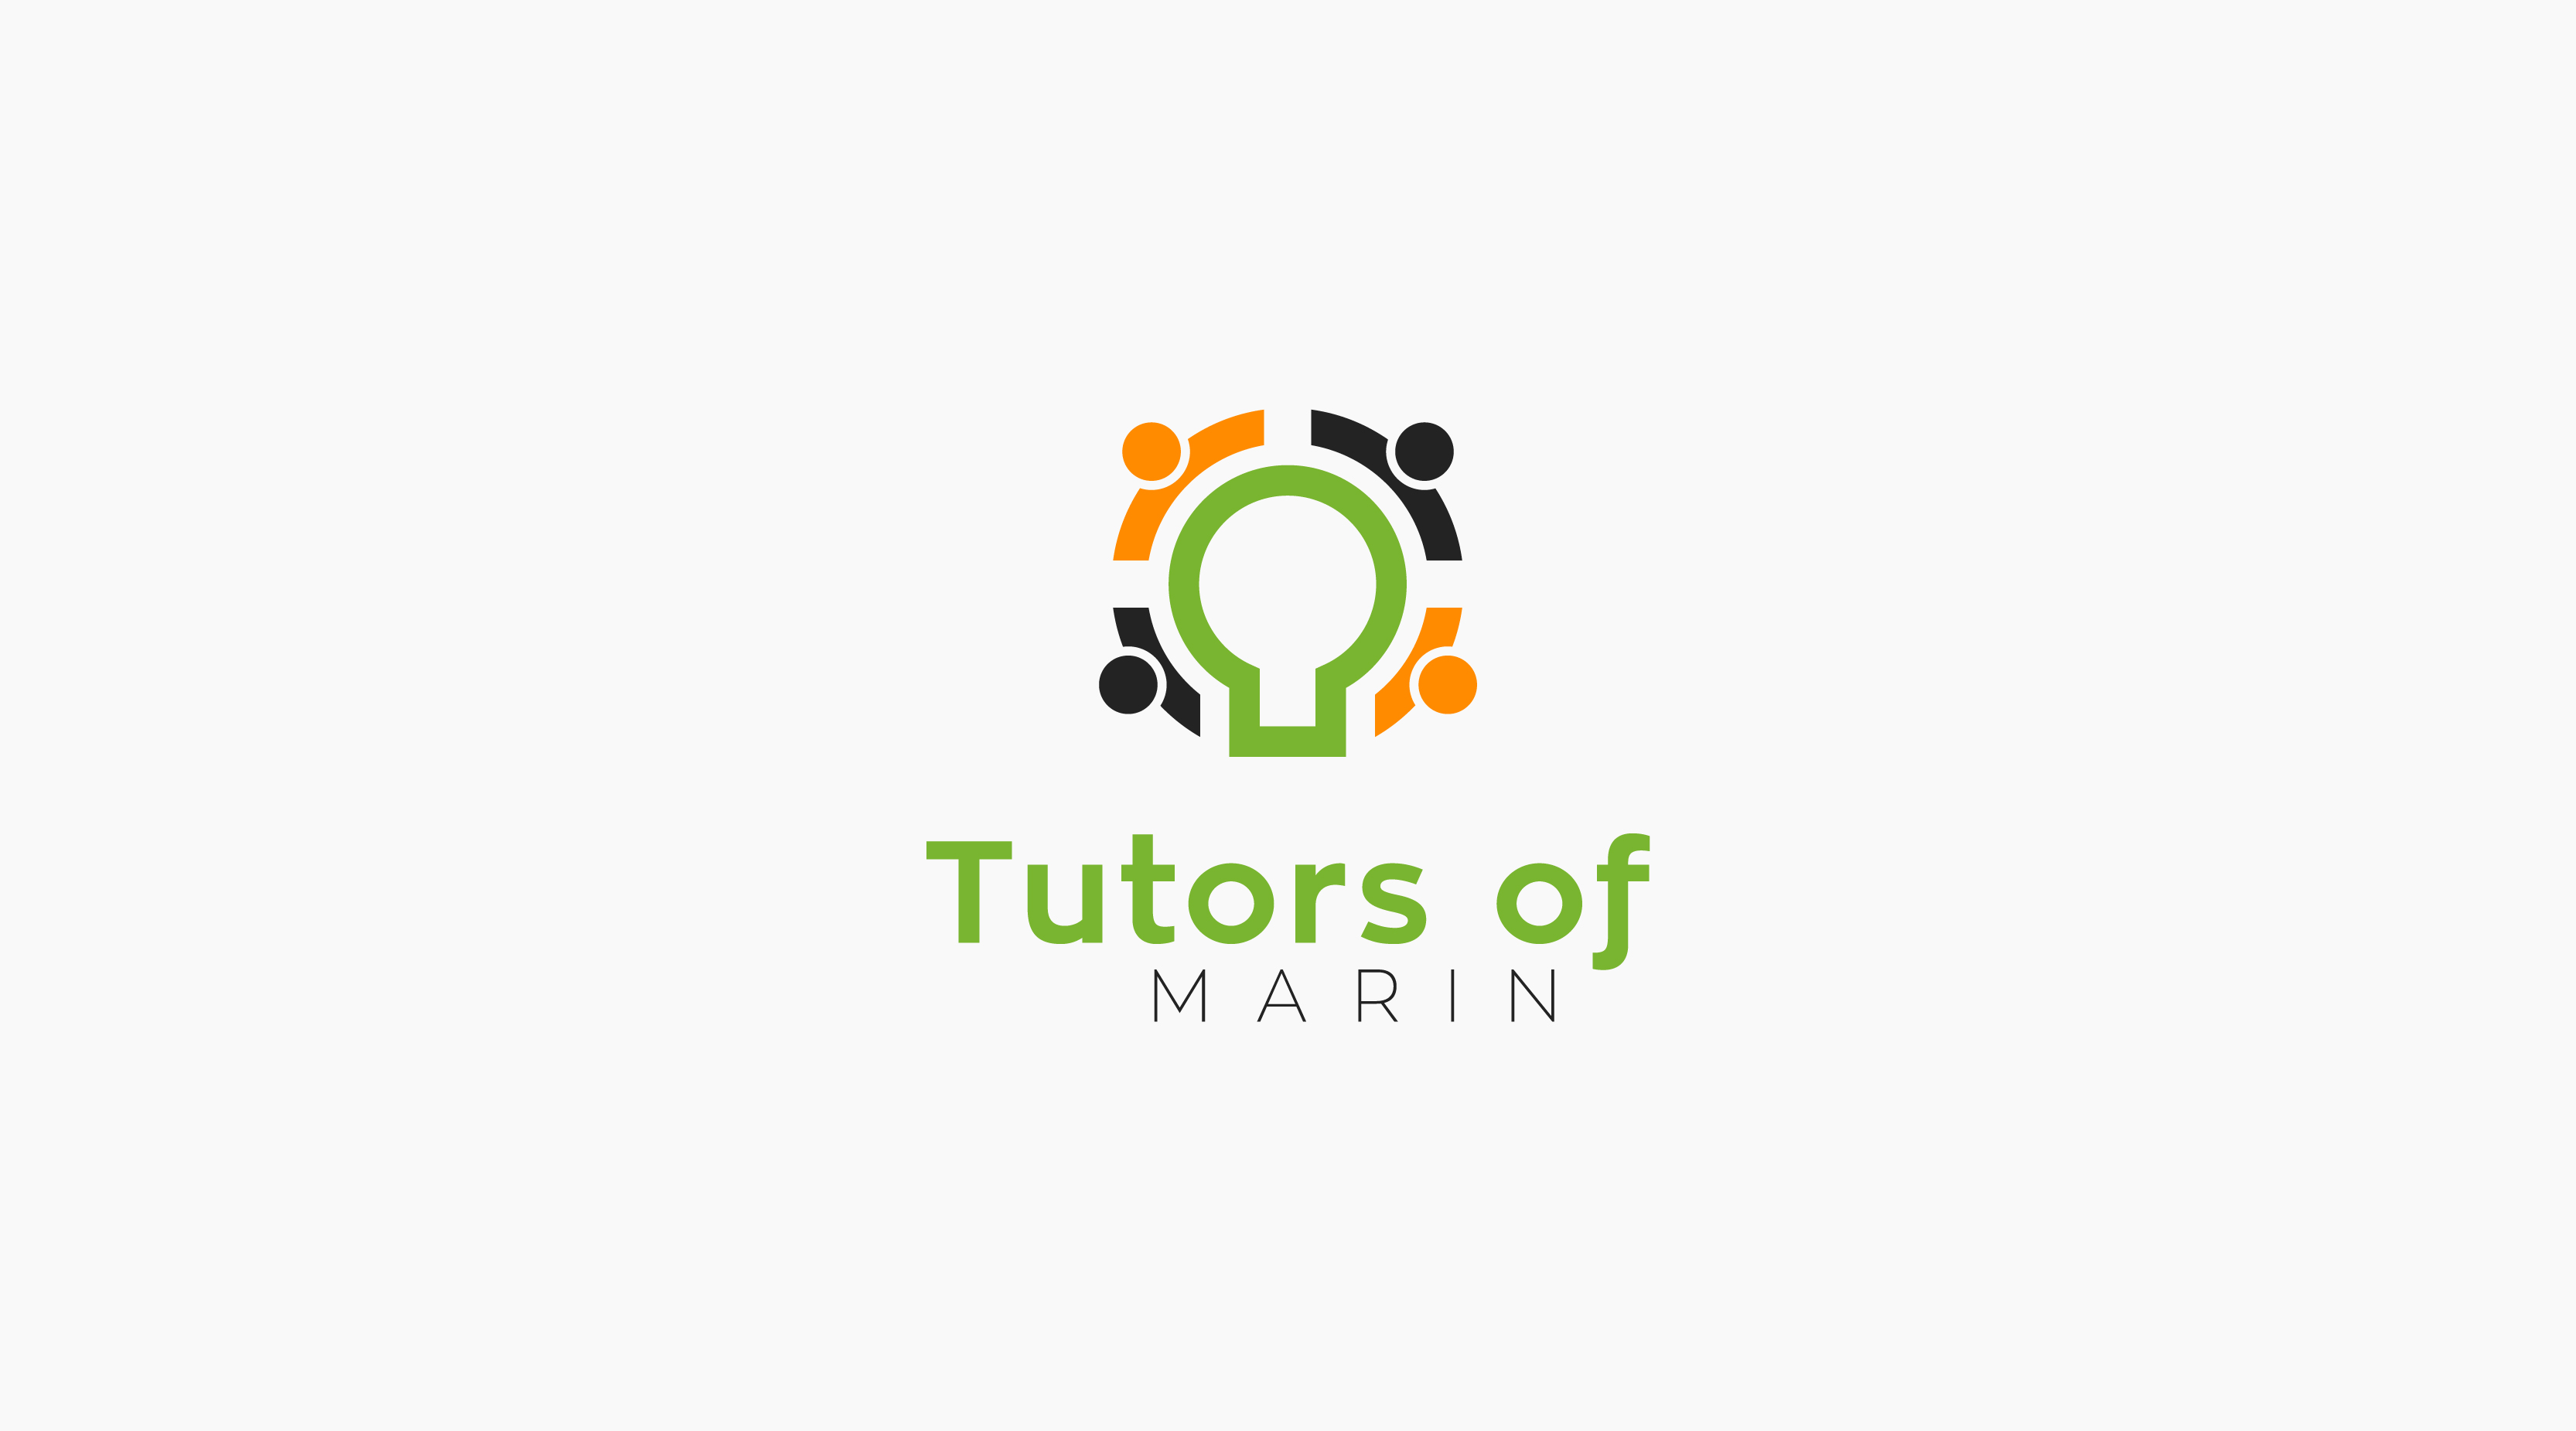 Tutors of Marin